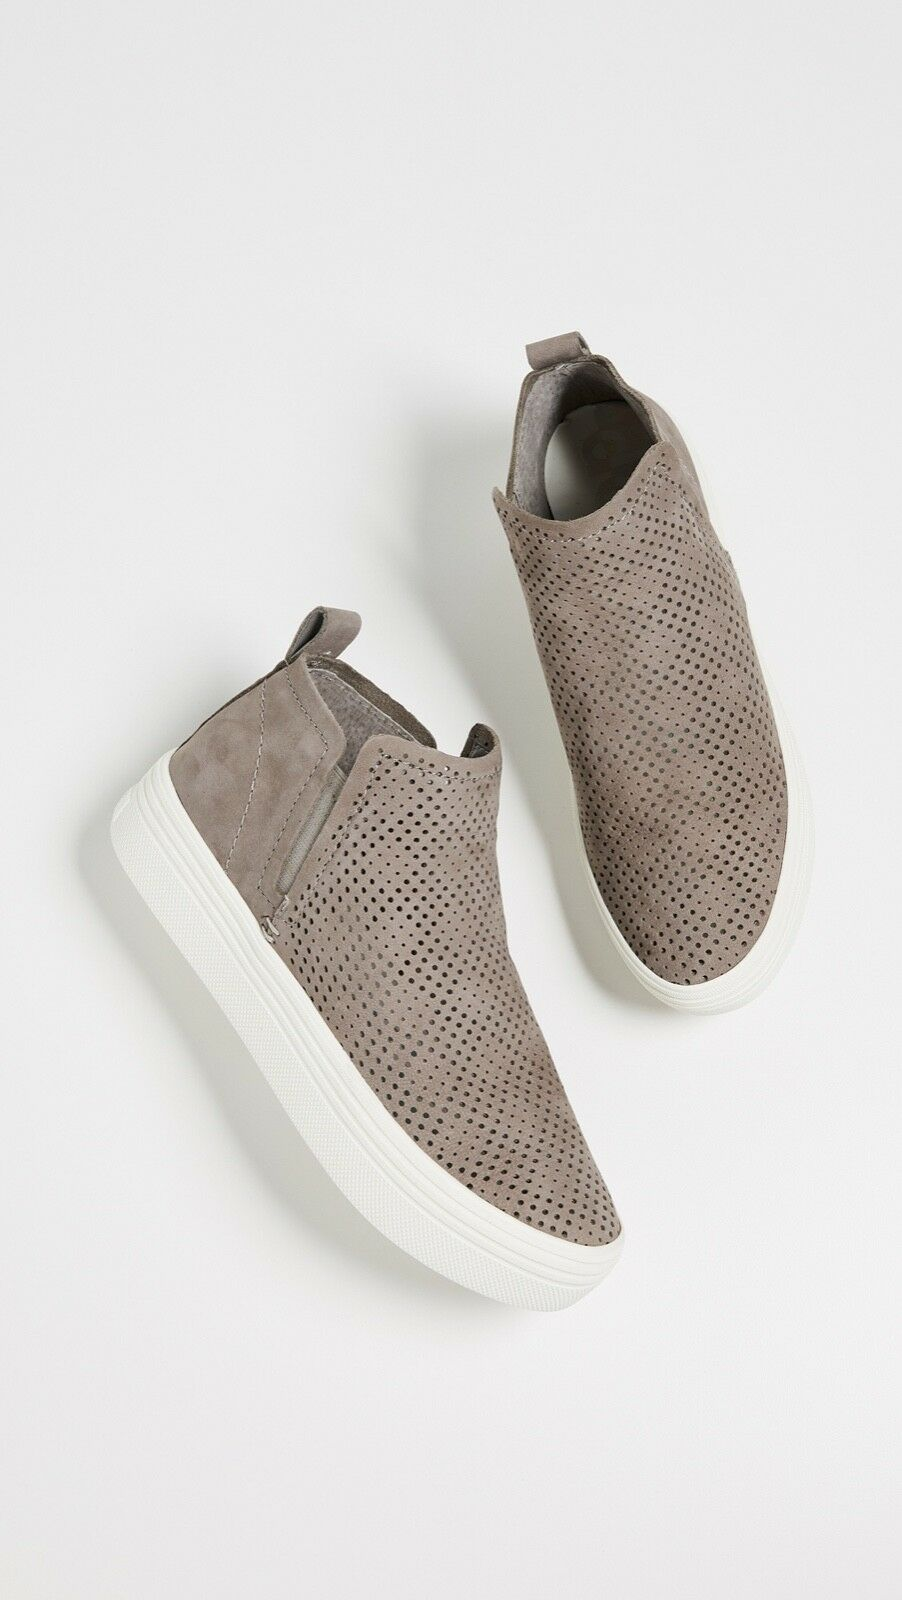 Dolce Vita damen's Tate Slip On Suede Suede Suede Turnschuhe 8.5M NEW Perforated Smoke Slip On 9b819e